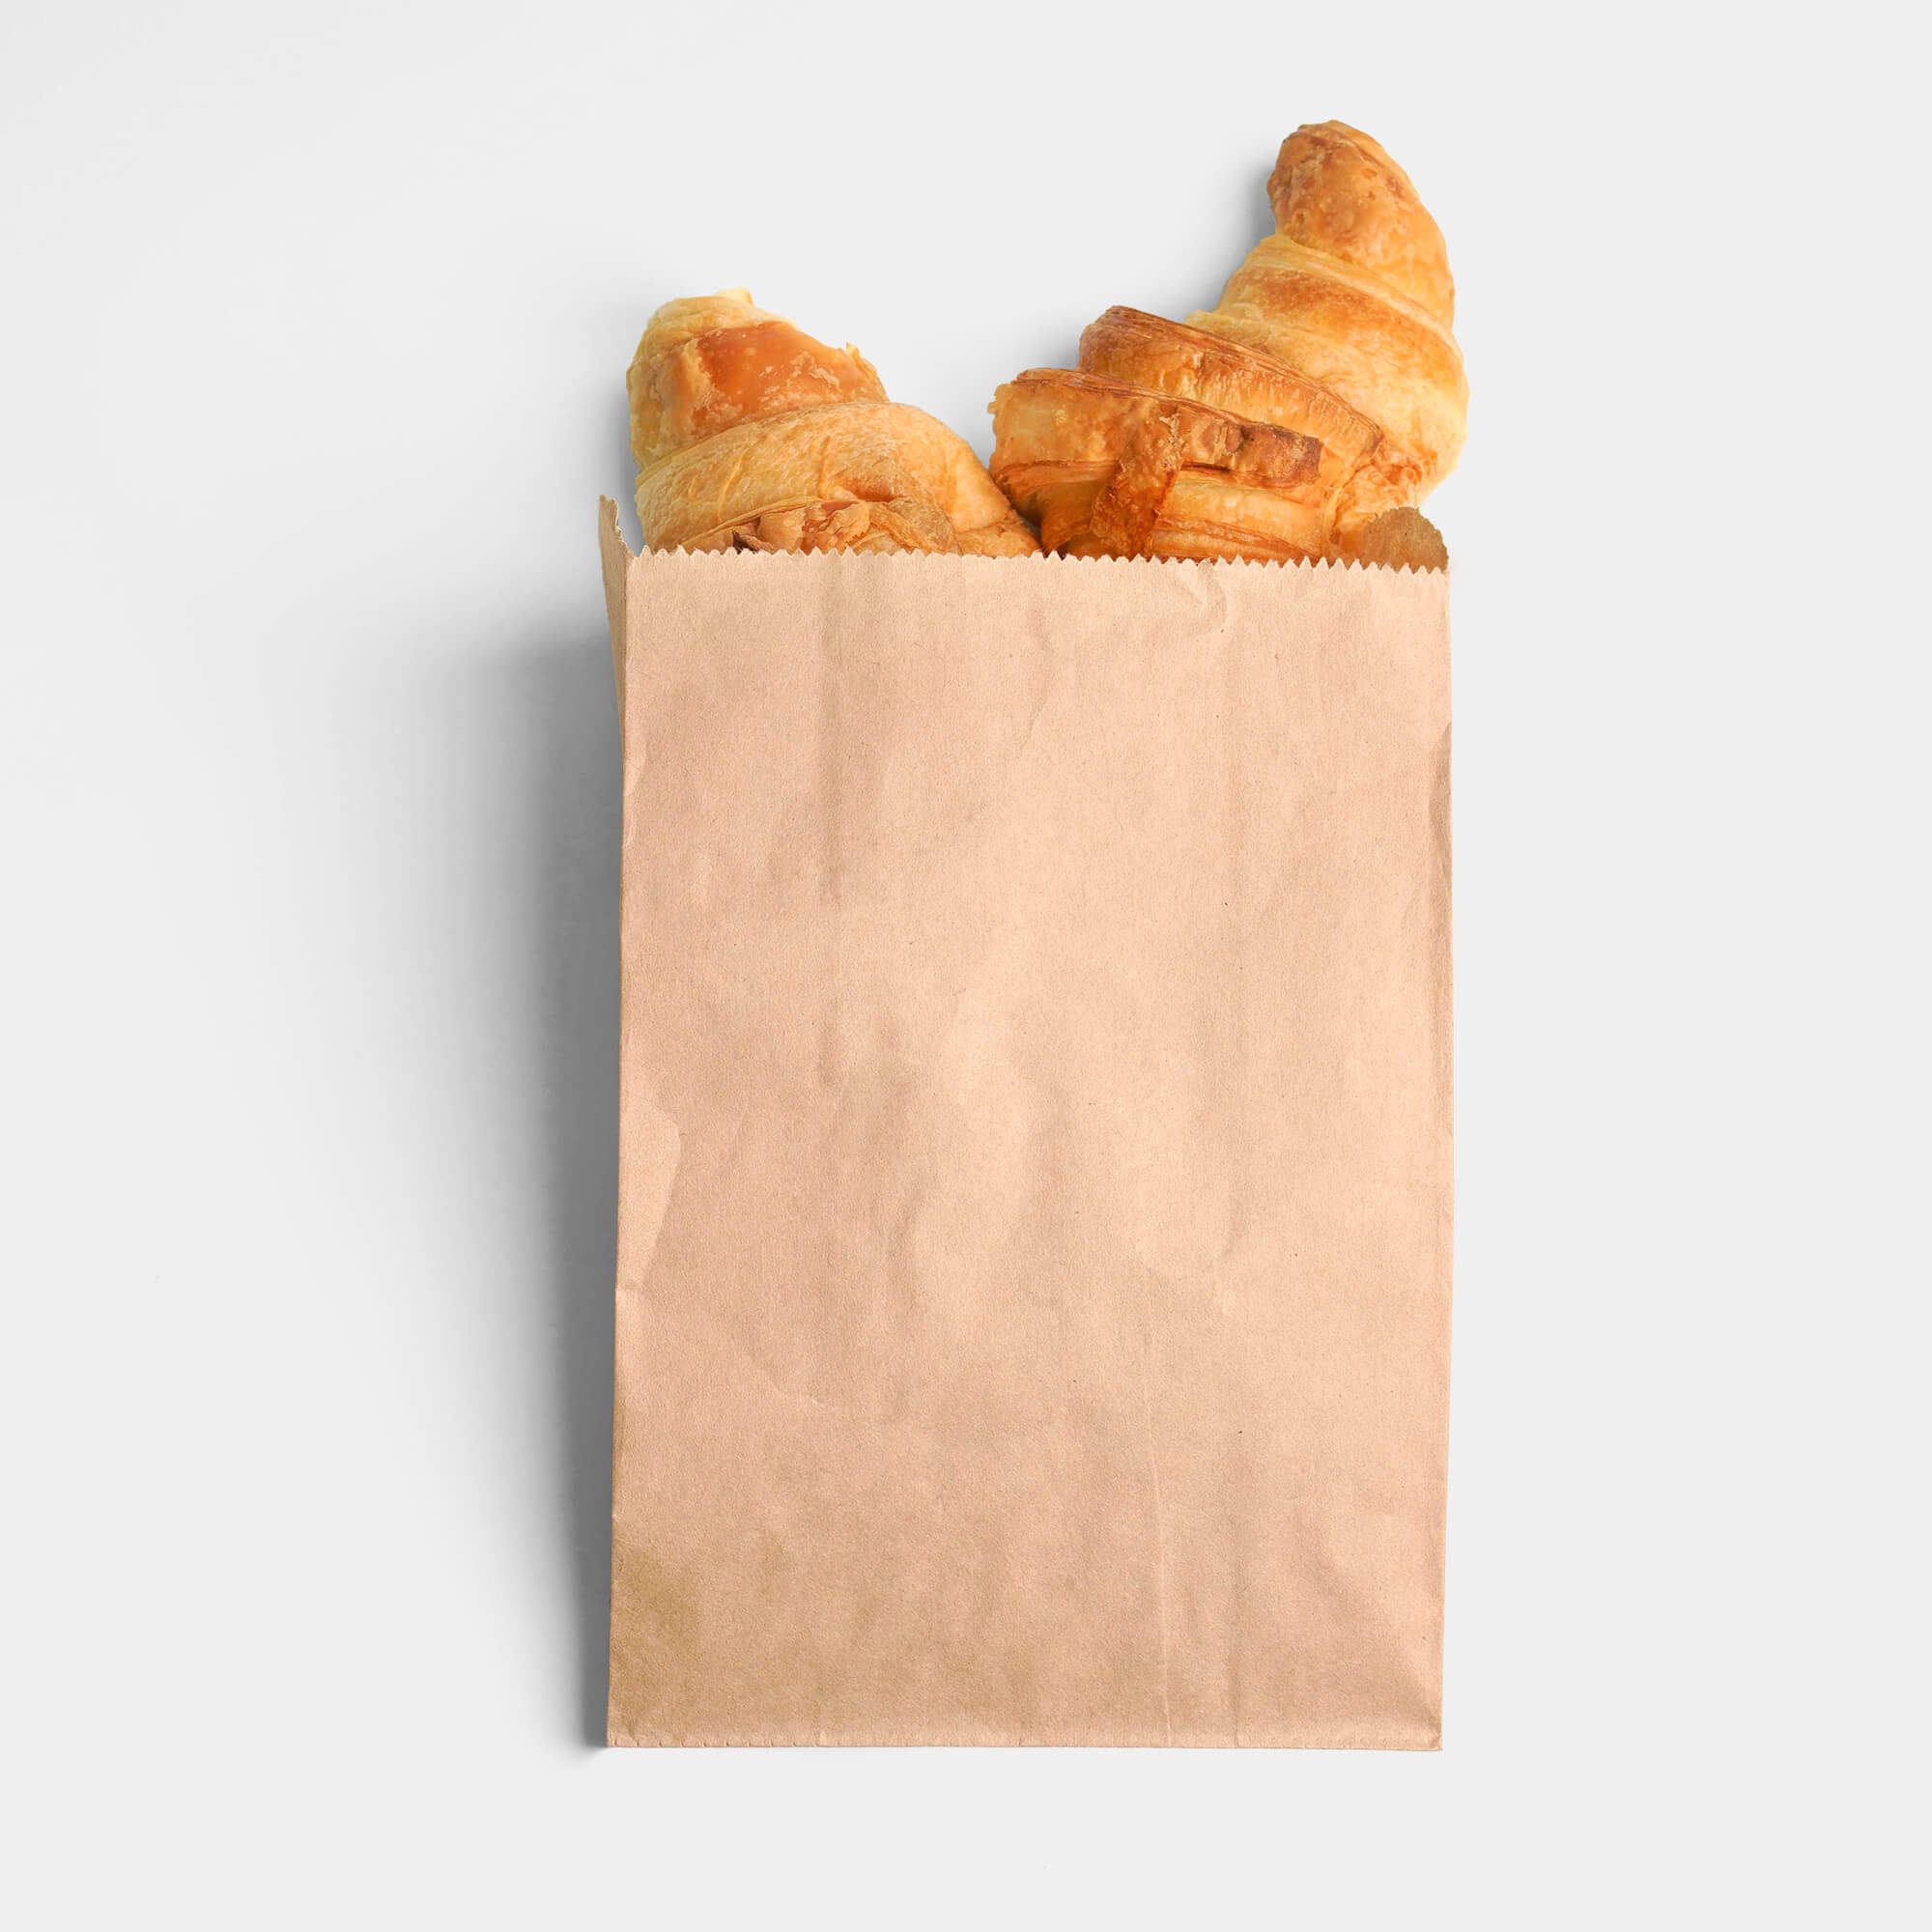 Blank Free Bread Bag Mockup PSD Template